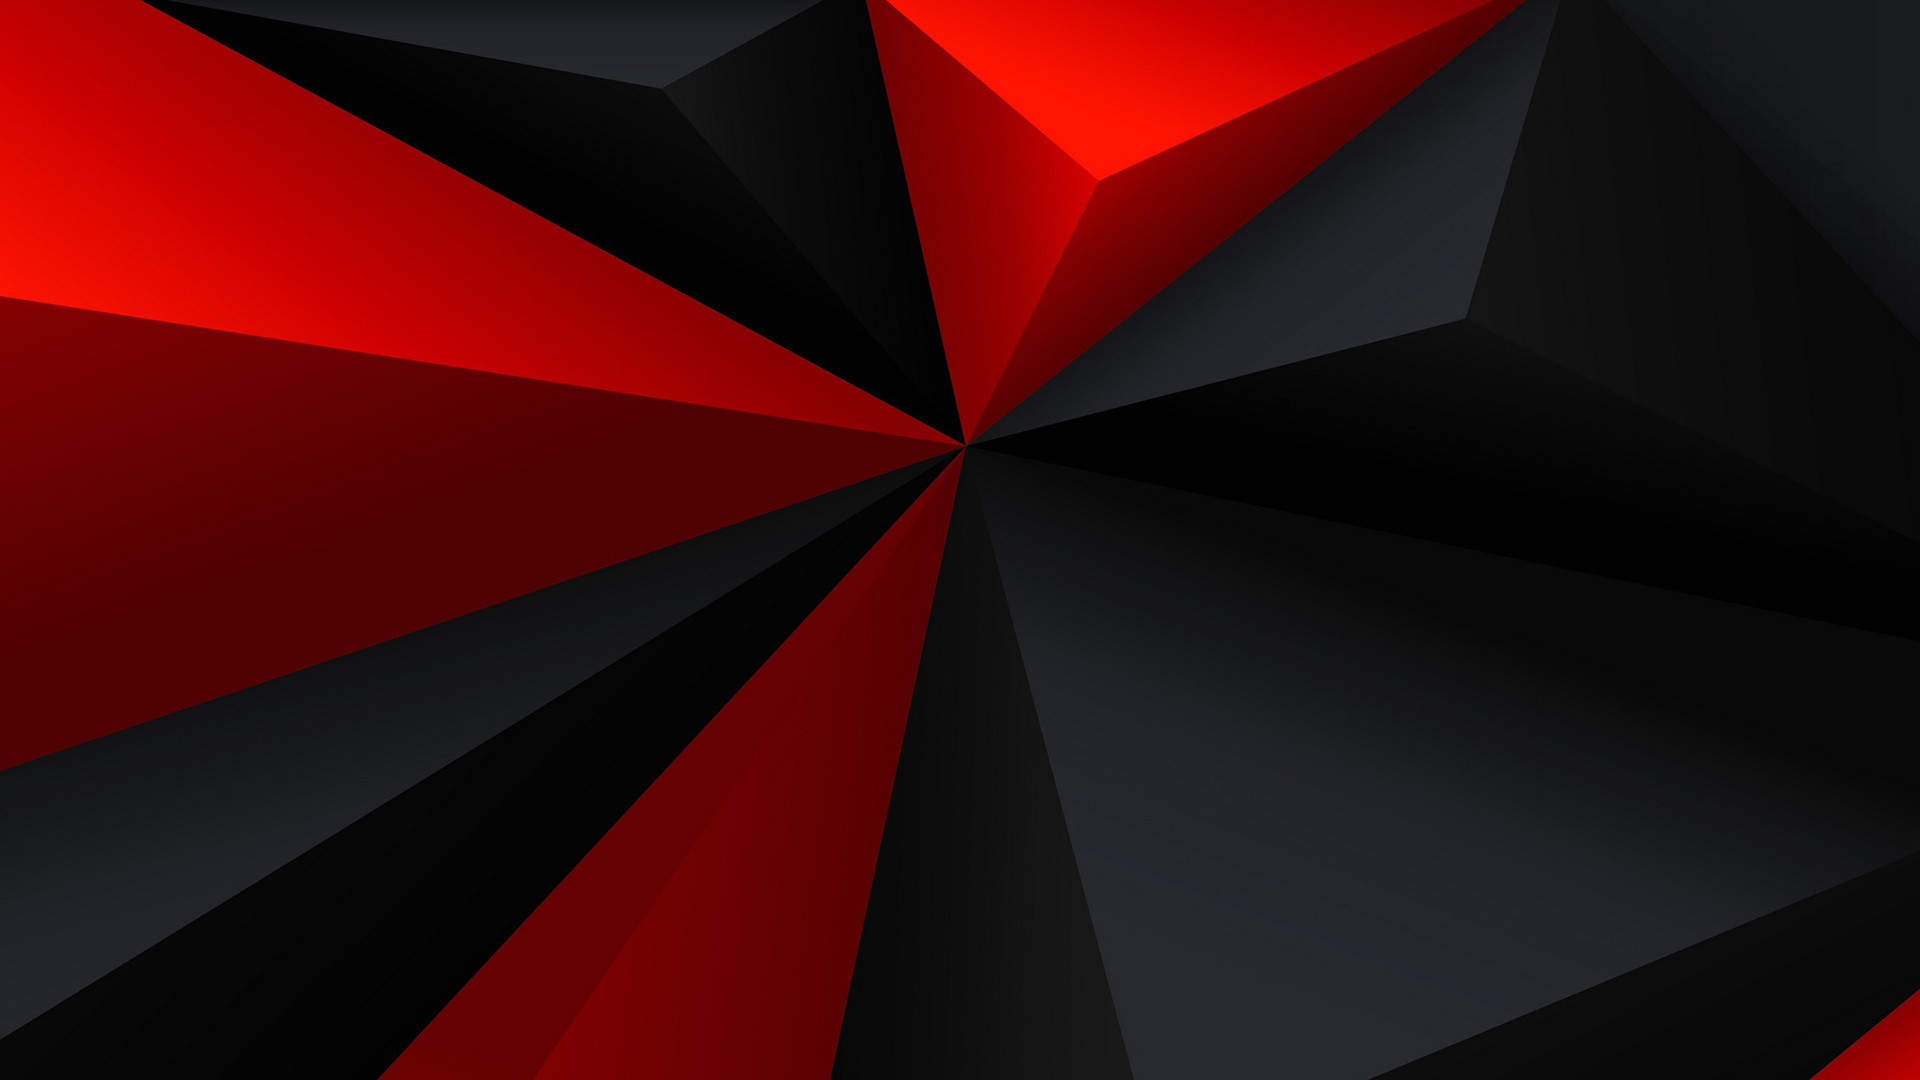 1920x1080 1920x1200 Black and red wallpaper free red black background wallpaper  windows.